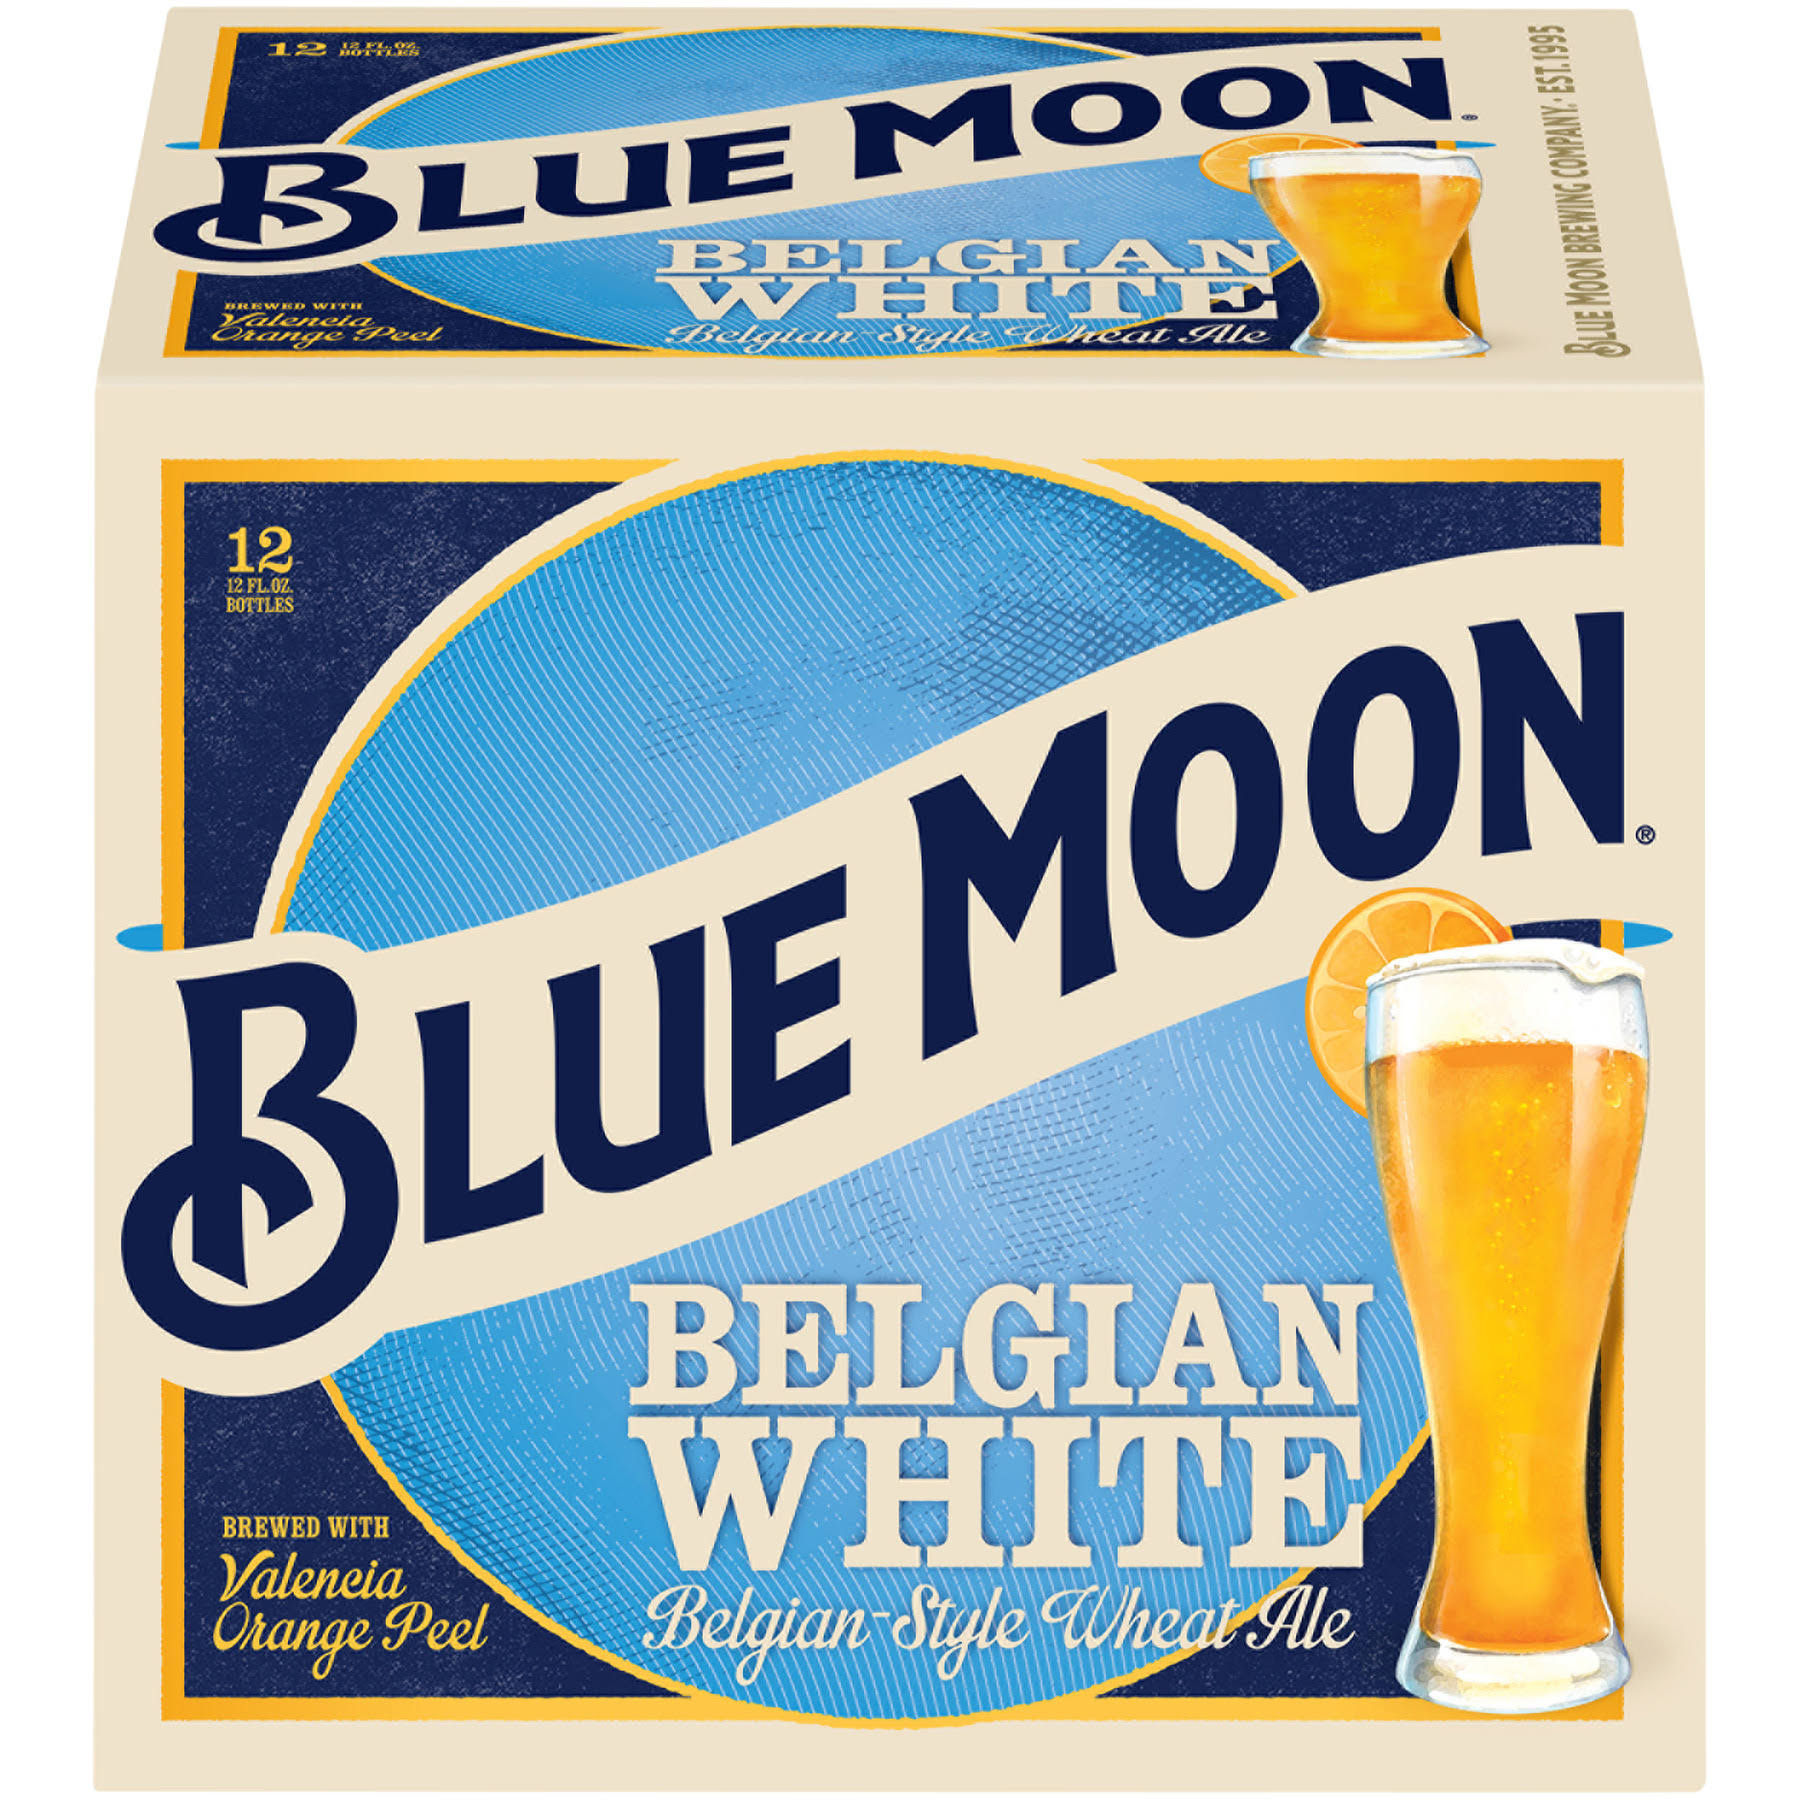 Blue Moon Wheat Ale, Belgian-Style, Belgian White, 12 Pack - 12 pack, 12 fl oz bottles